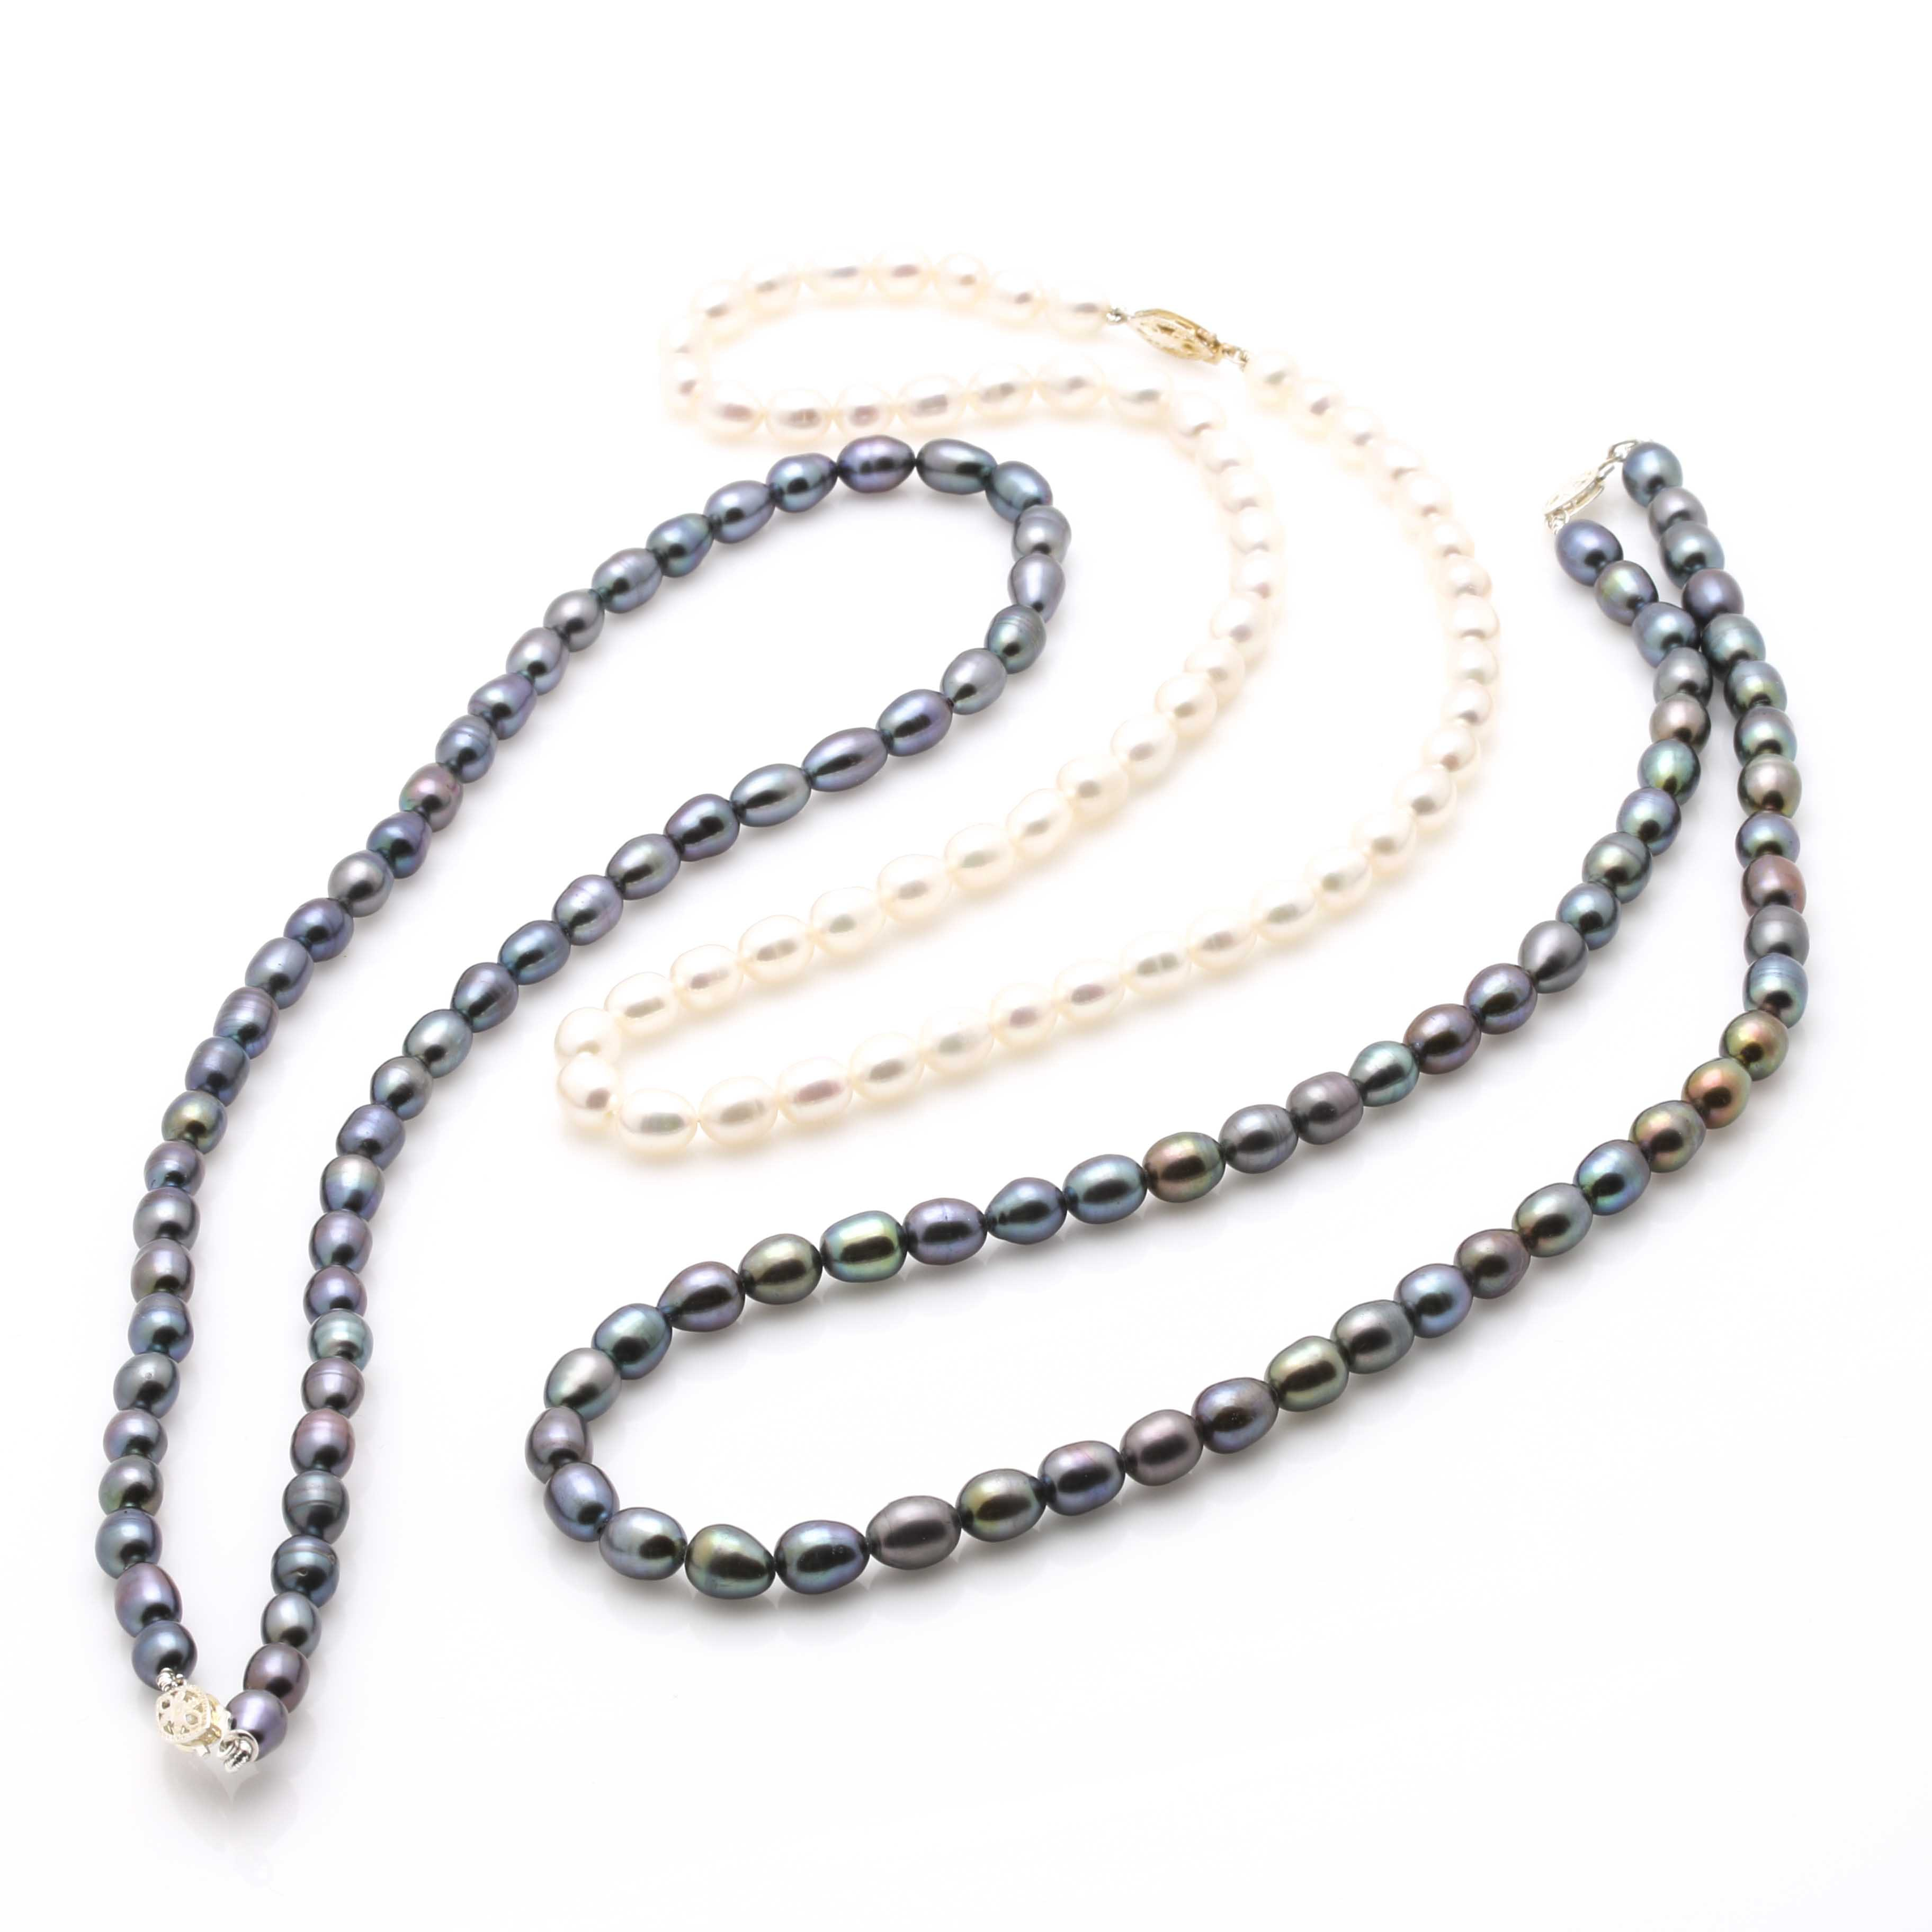 Freshwater Cultured Pearl Necklaces